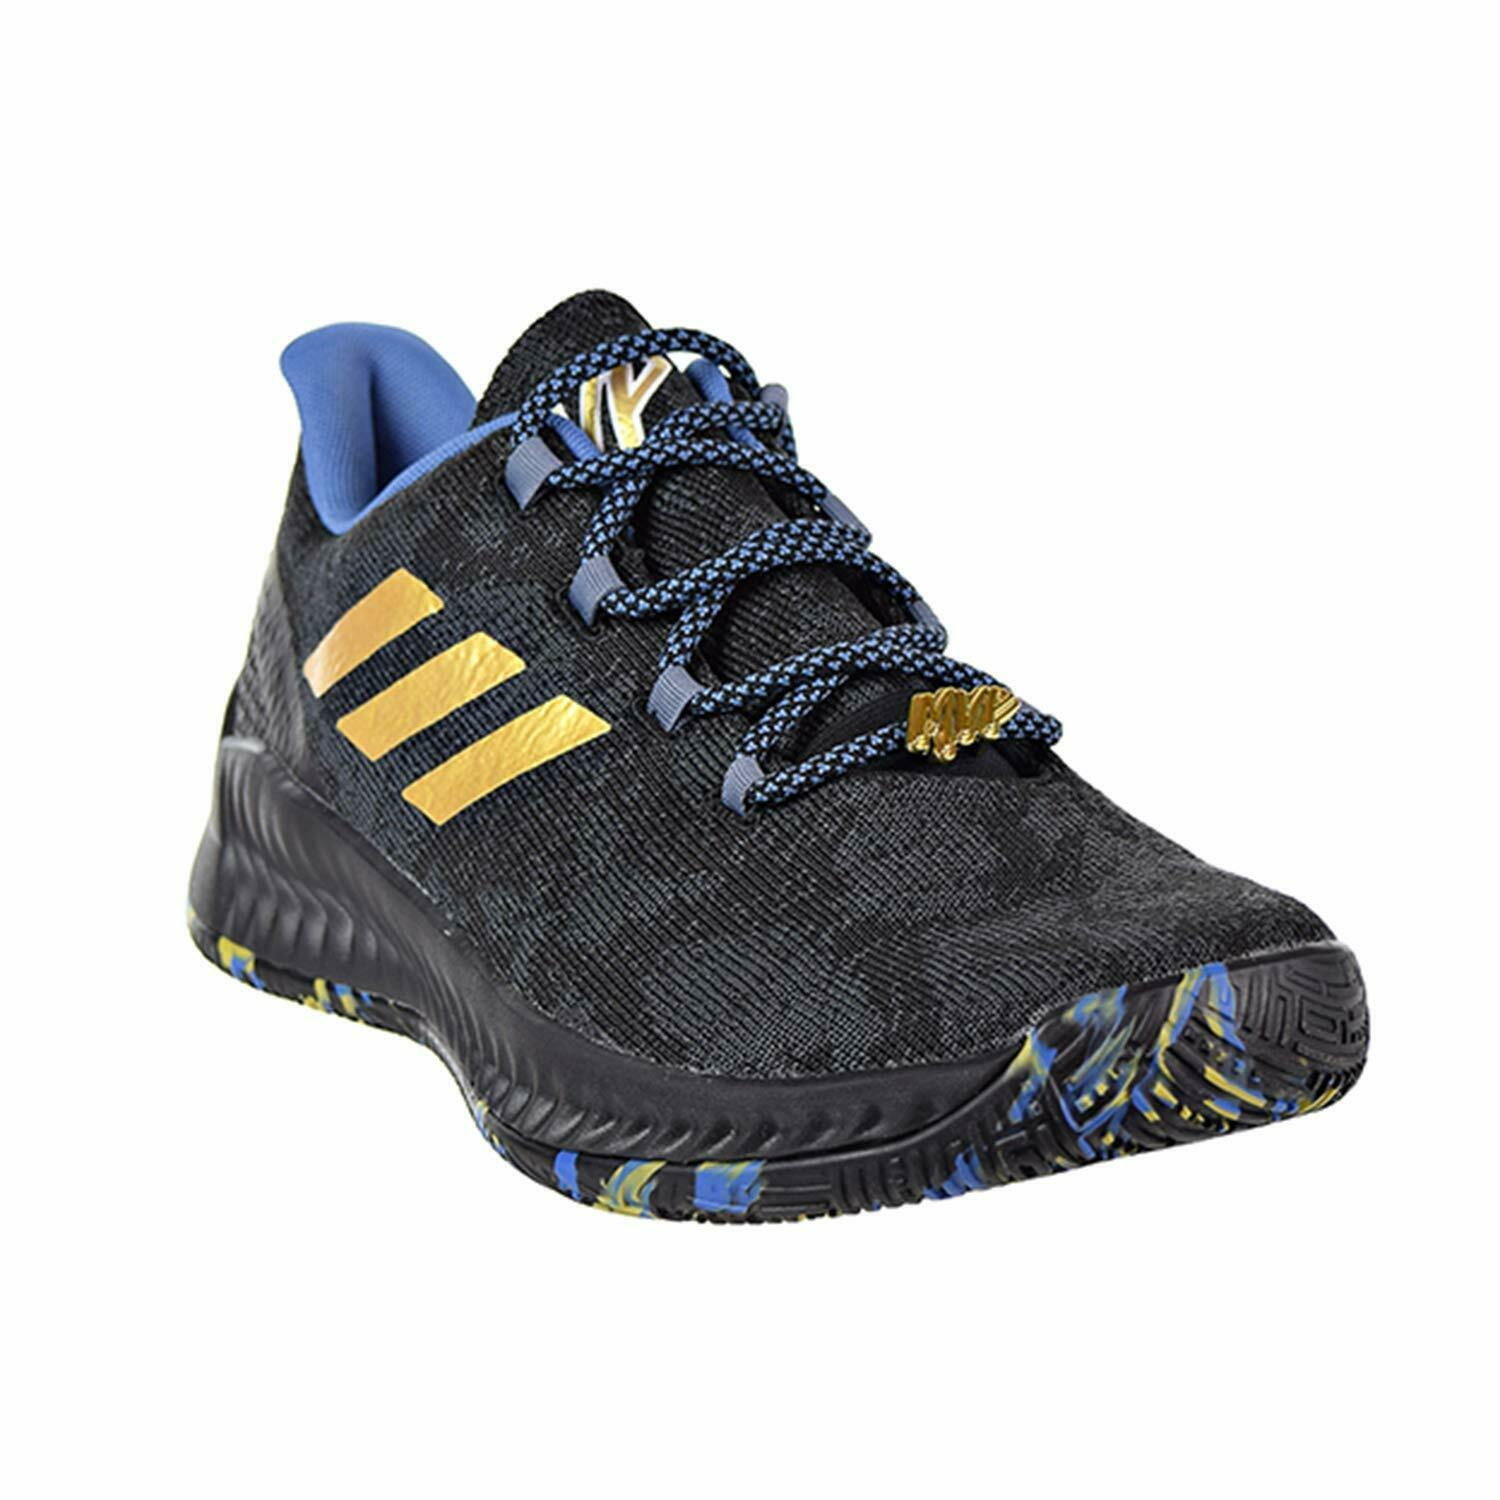 Adidas Harden B/E X MVP James Black Blue Gold Mens Basketball Shoes F36813 image 2